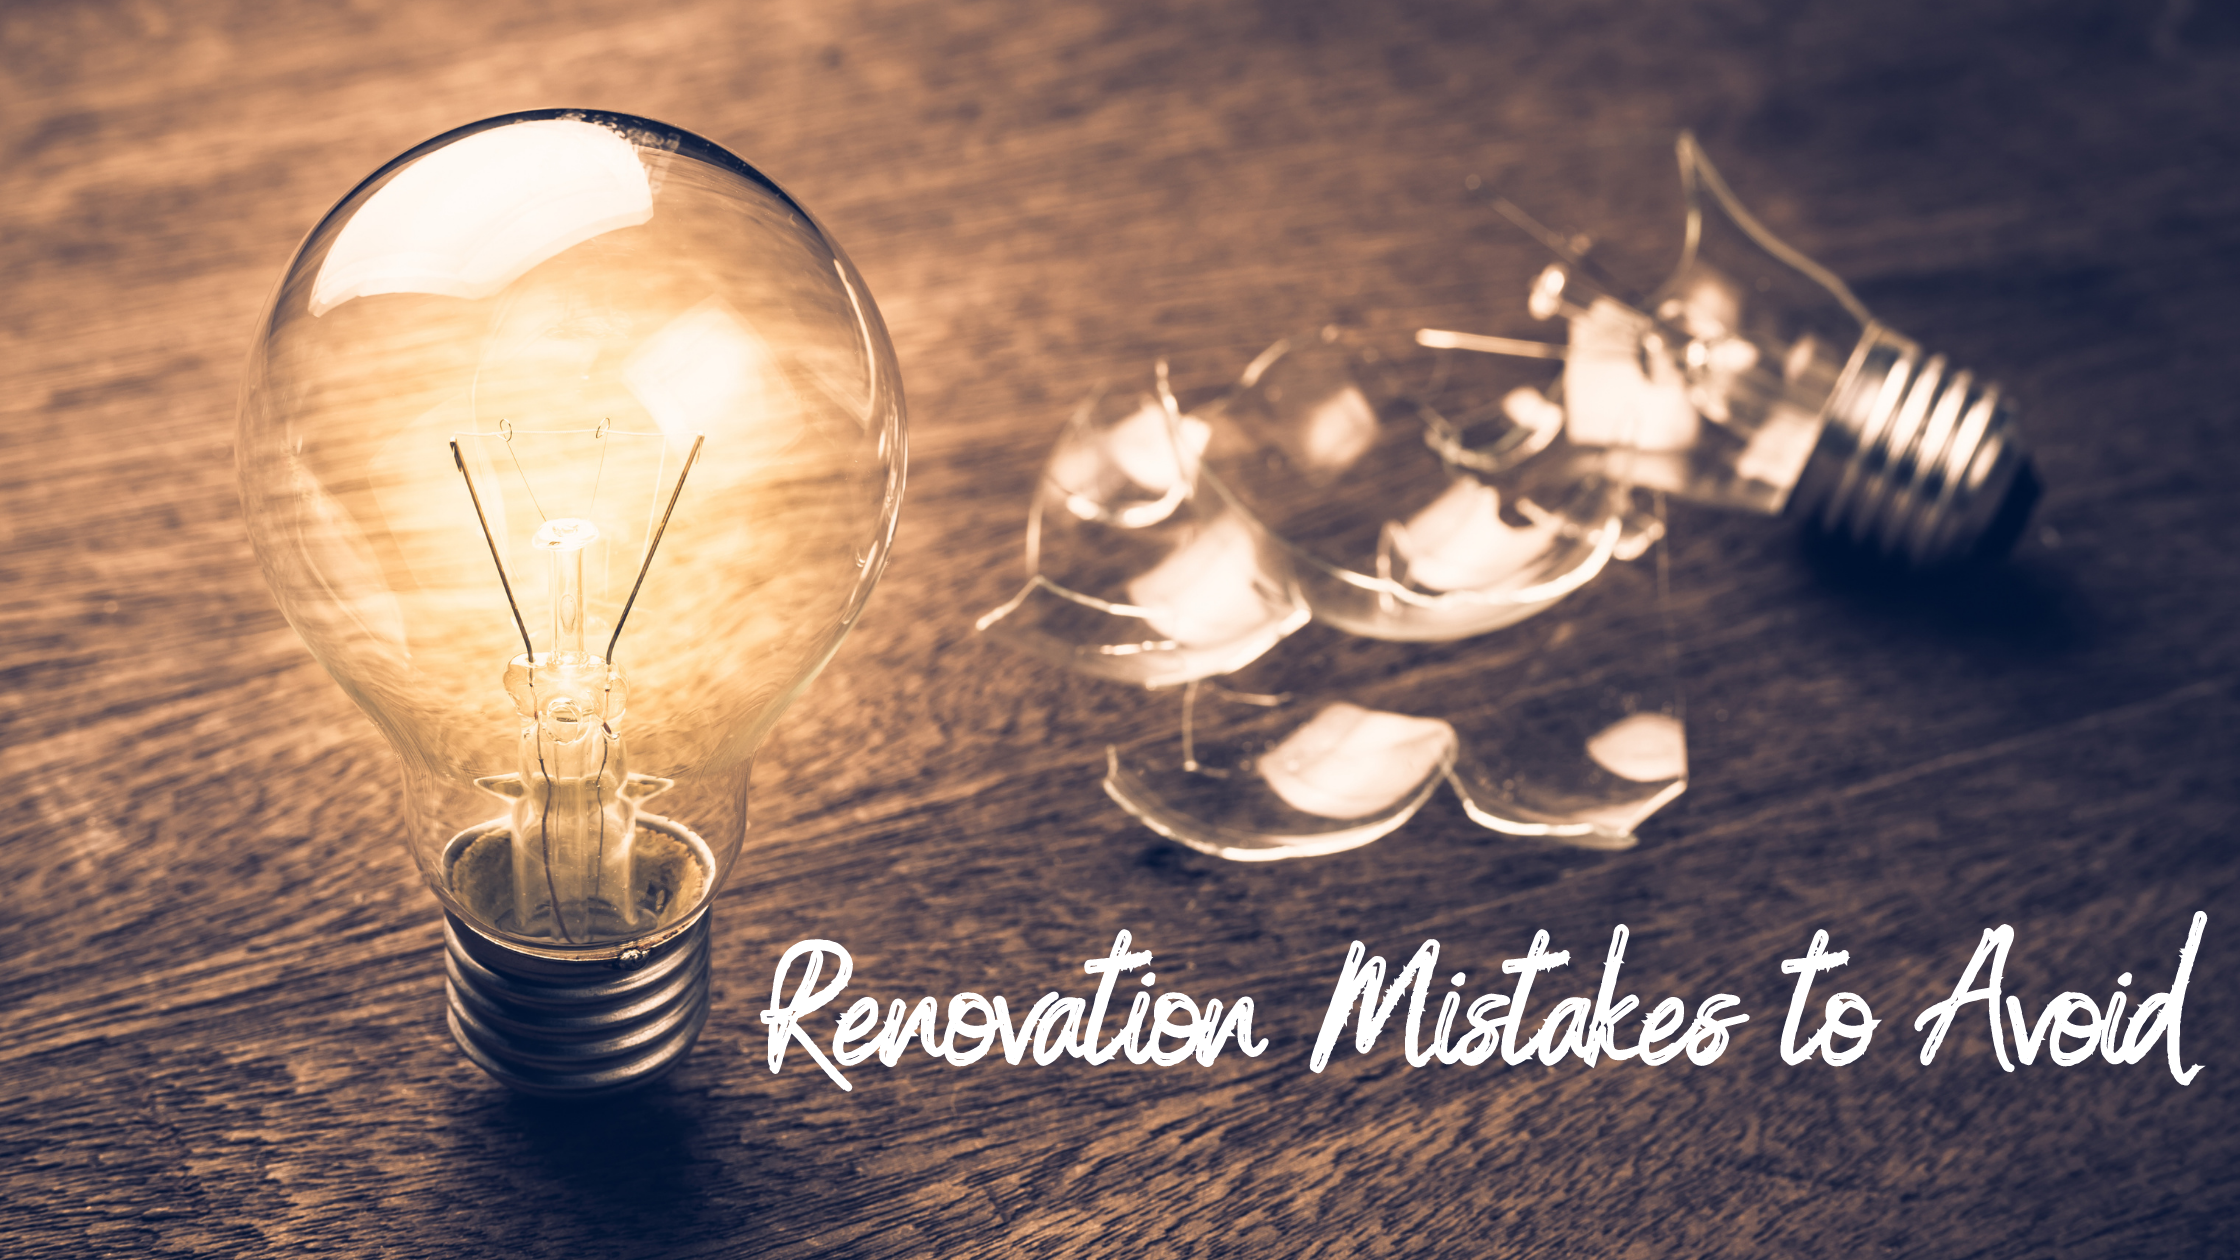 renovation mistakes